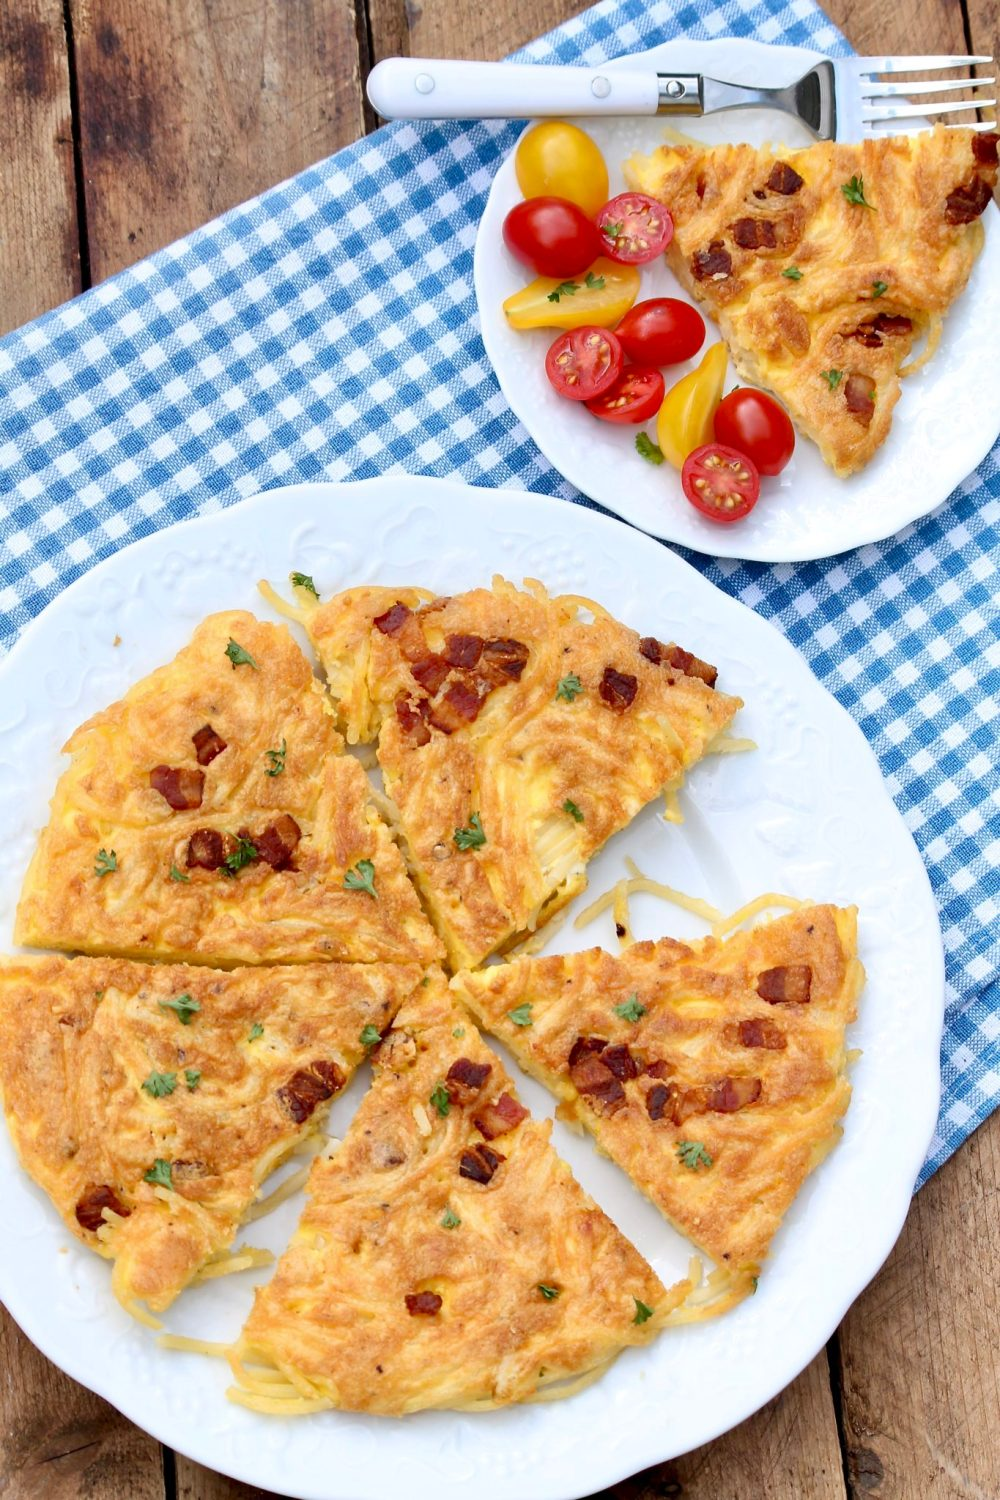 Leftover Pasta Frittata-This speedy dish is the perfect way to stretch leftover pasta into a fun new meal. Recipe works with spaghetti squash, too!